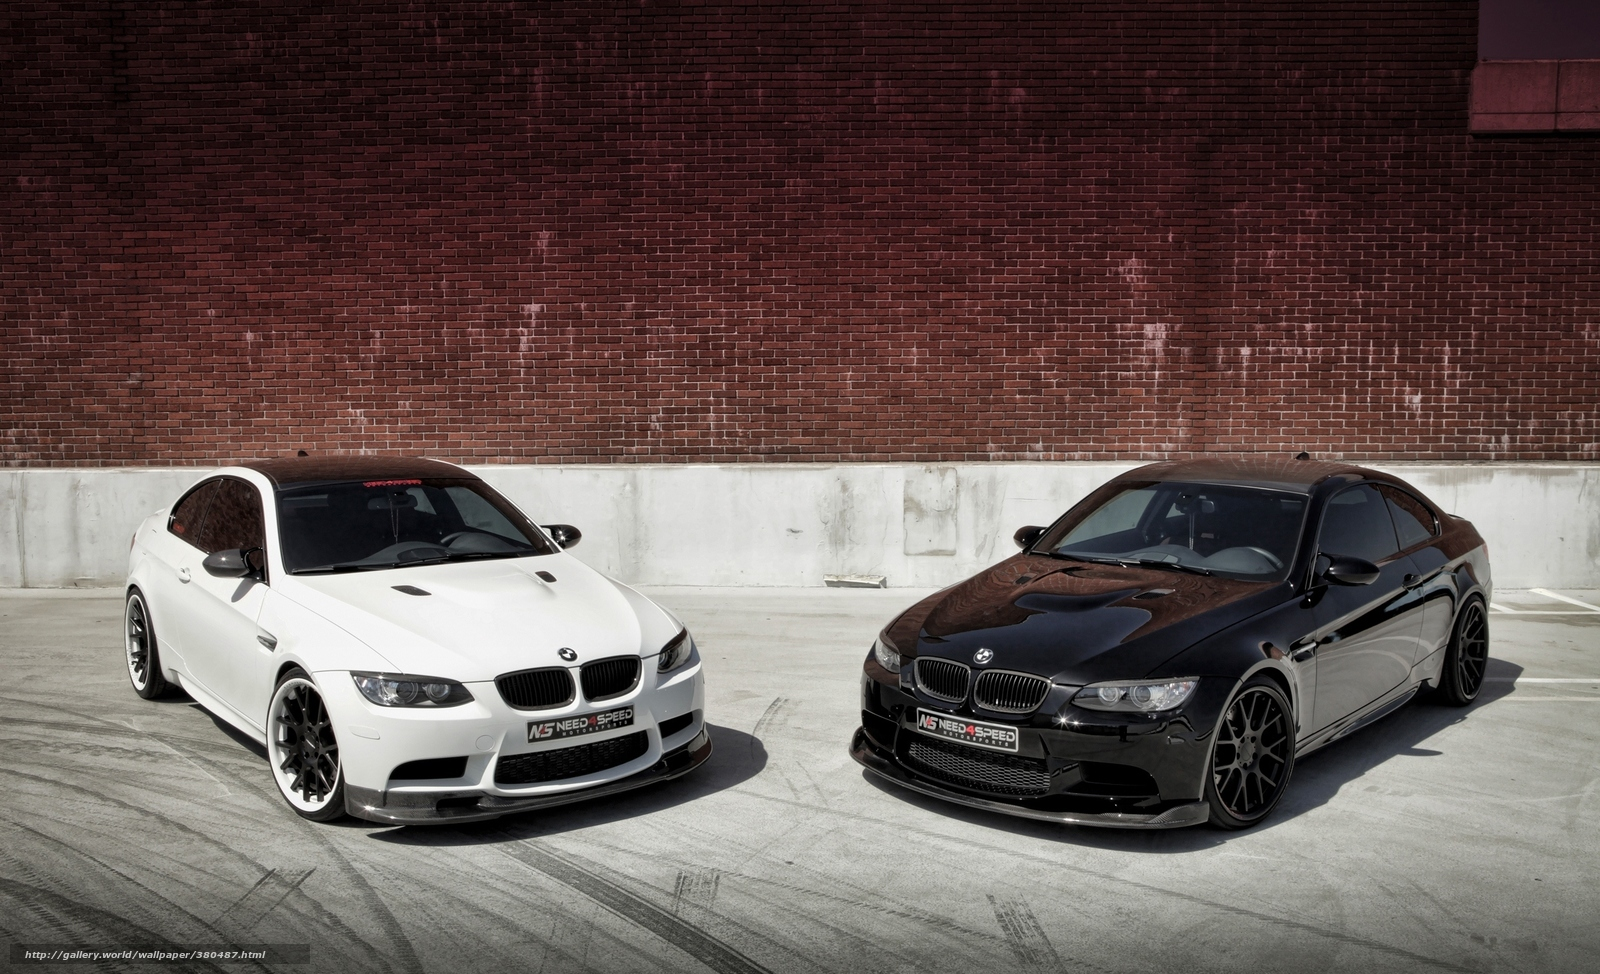 Download Wallpaper Bmw White Black Brick Wall Free